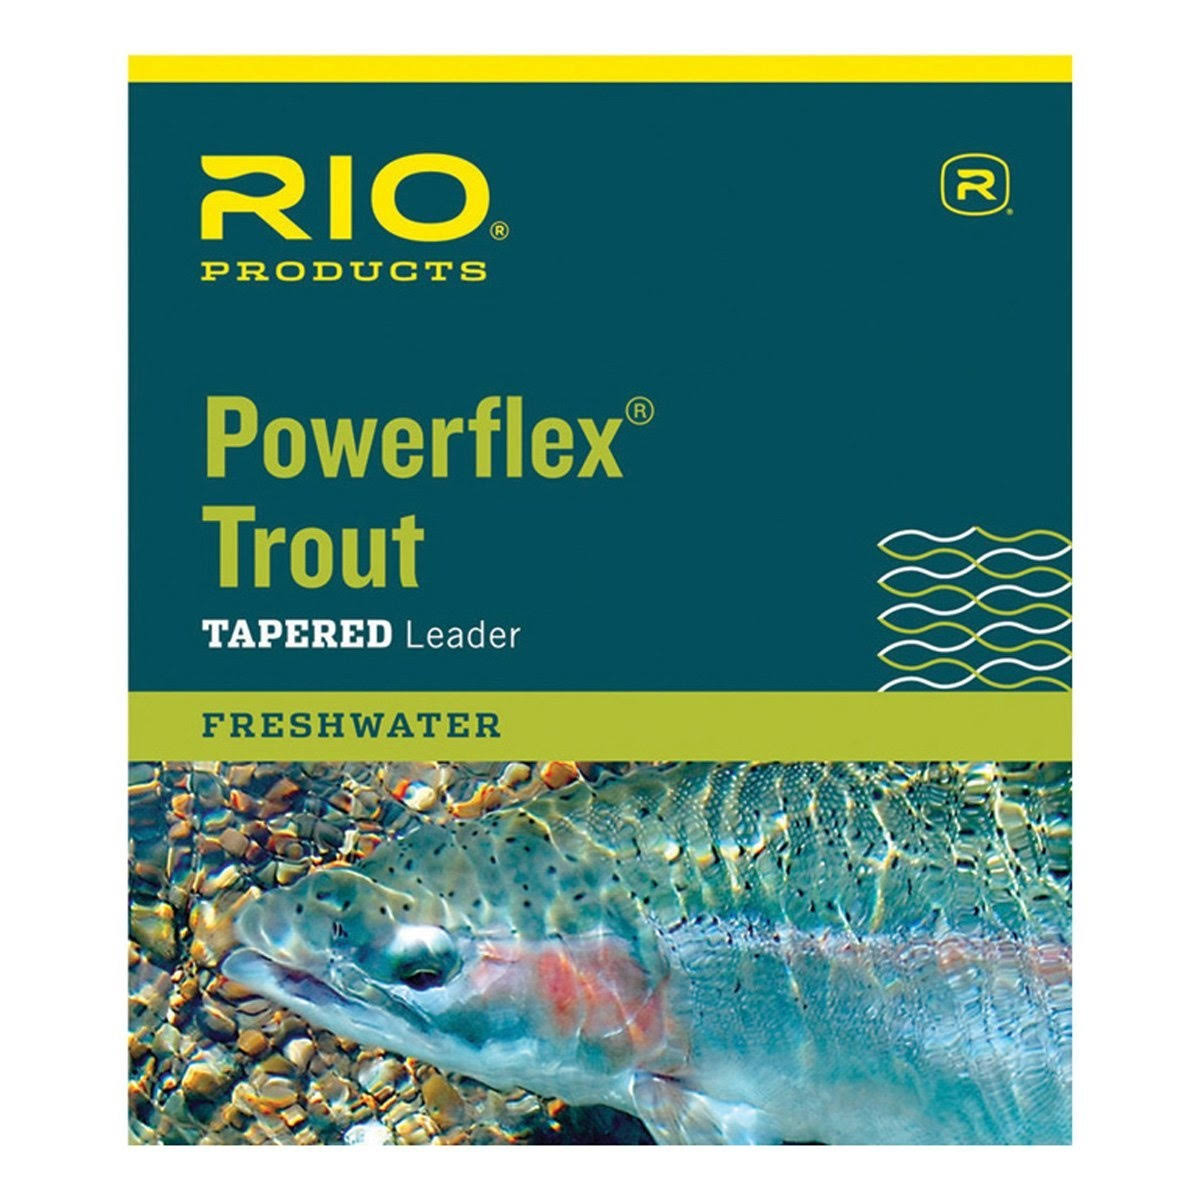 Rio Products Powerflex Trout Tapered Leader - 7-1/2'